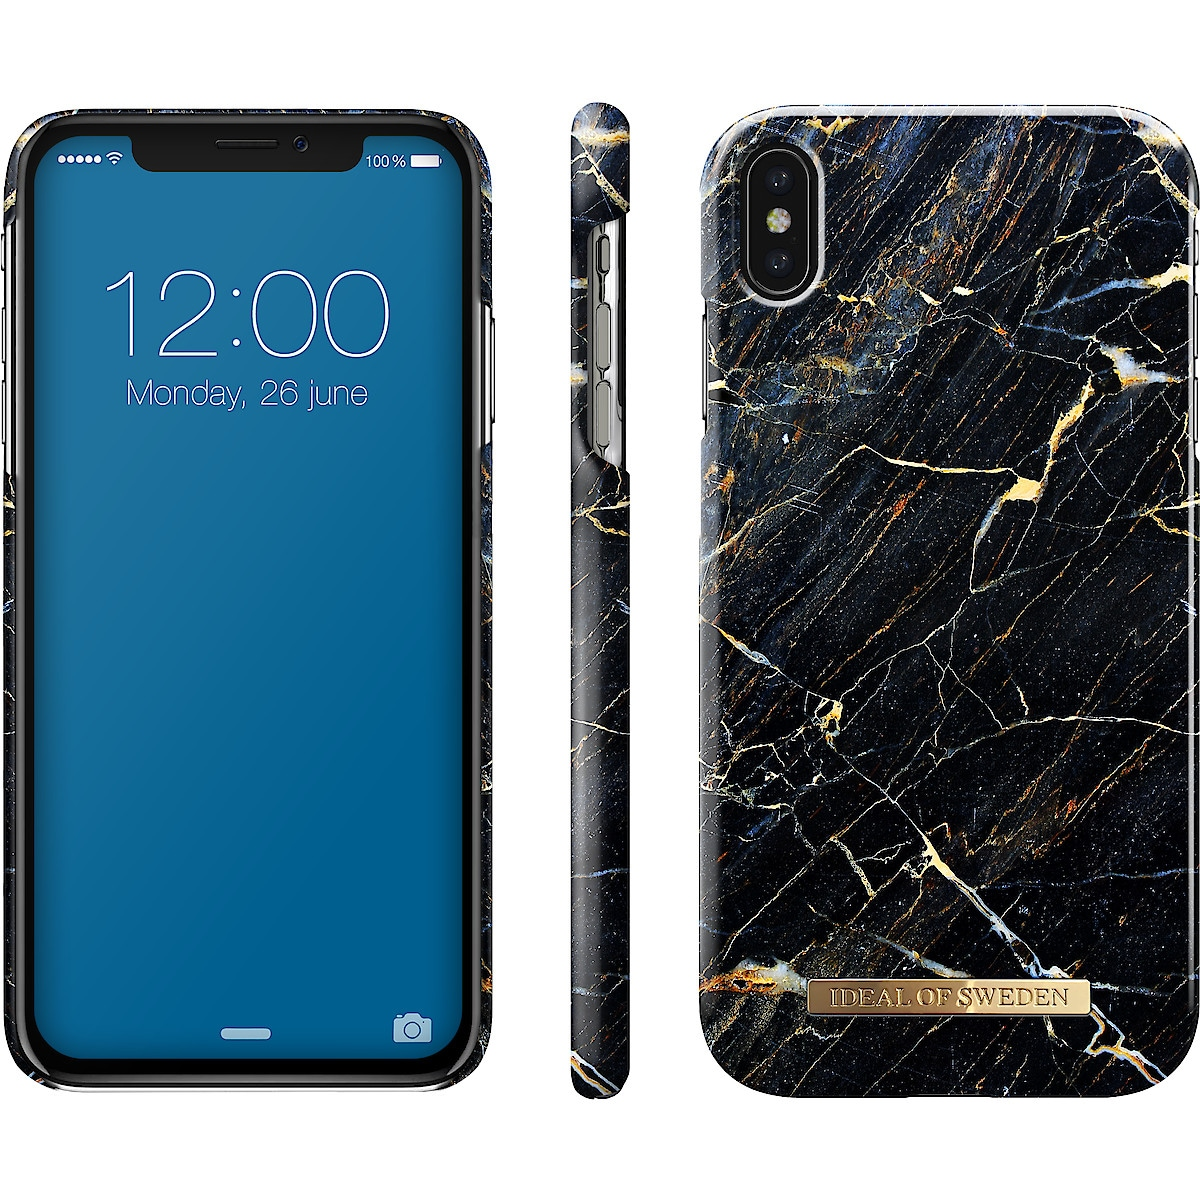 Kuori iPhone XS Max, iDeal of Sweden